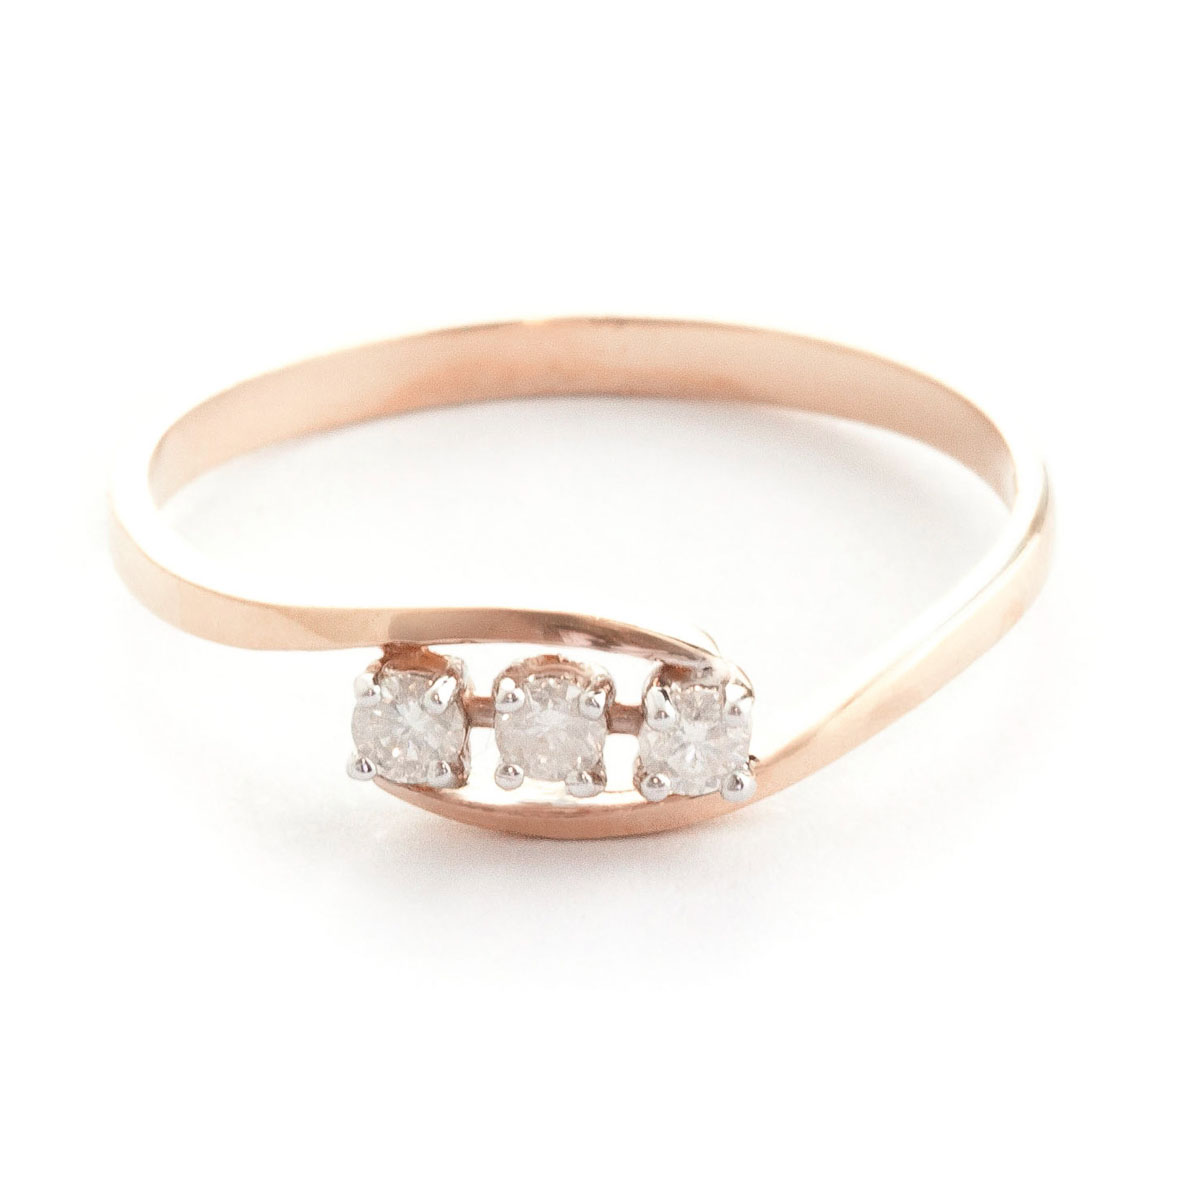 Round Cut Diamond Ring 0.15 ctw in 9ct Rose Gold